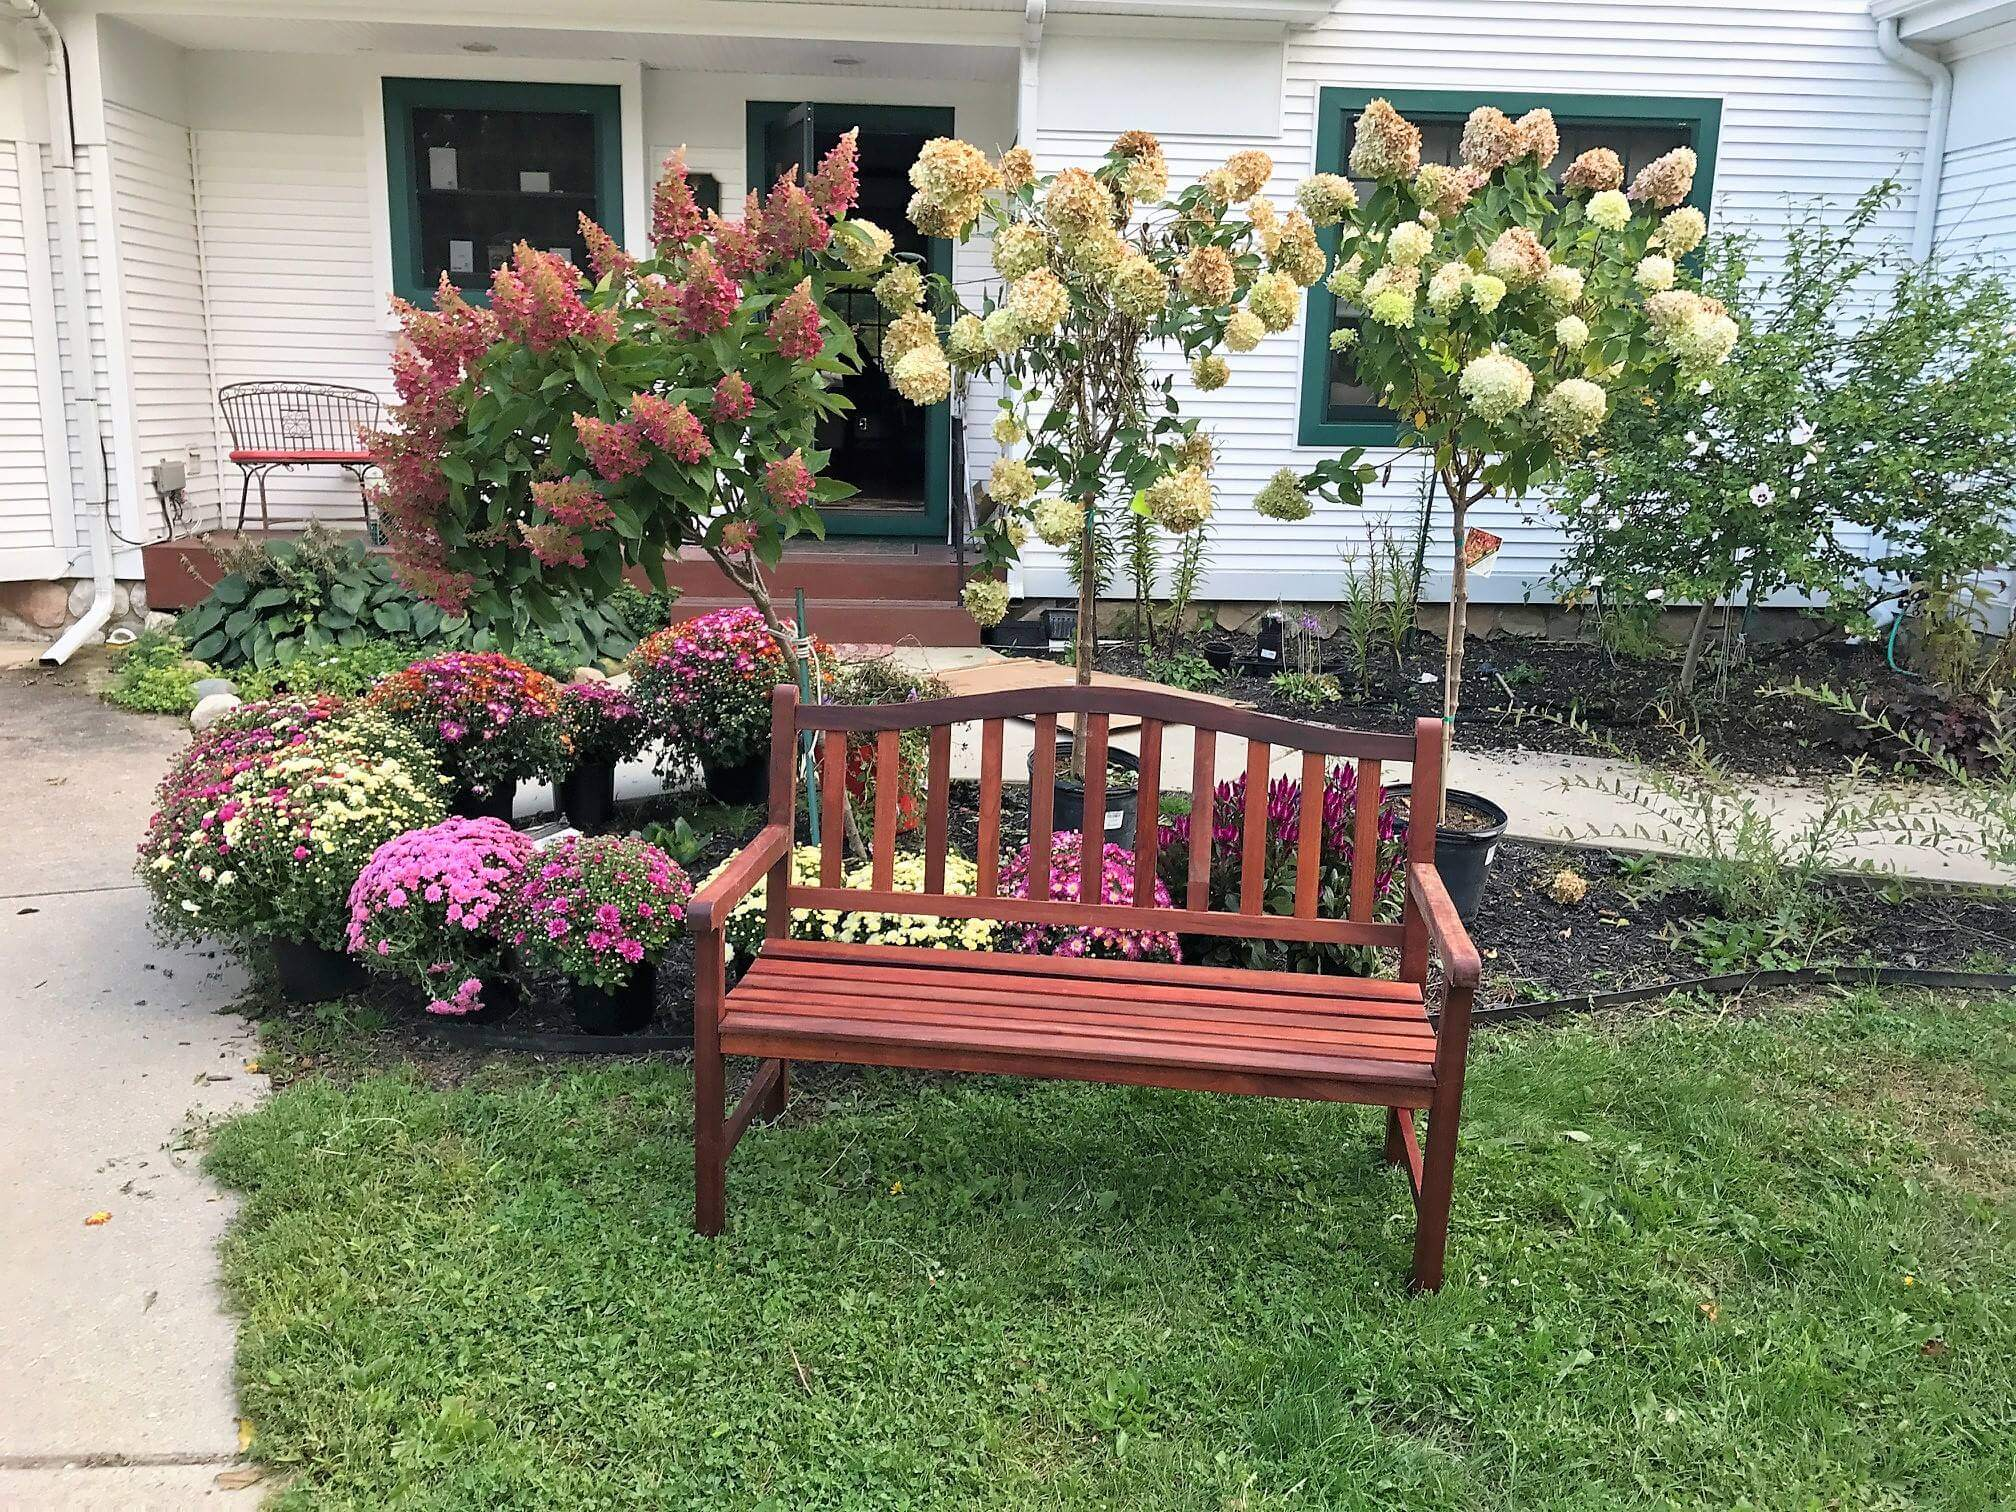 Peachy Maple Cove Bed And Breakfast Michigan Bed And Breakfast Unemploymentrelief Wooden Chair Designs For Living Room Unemploymentrelieforg